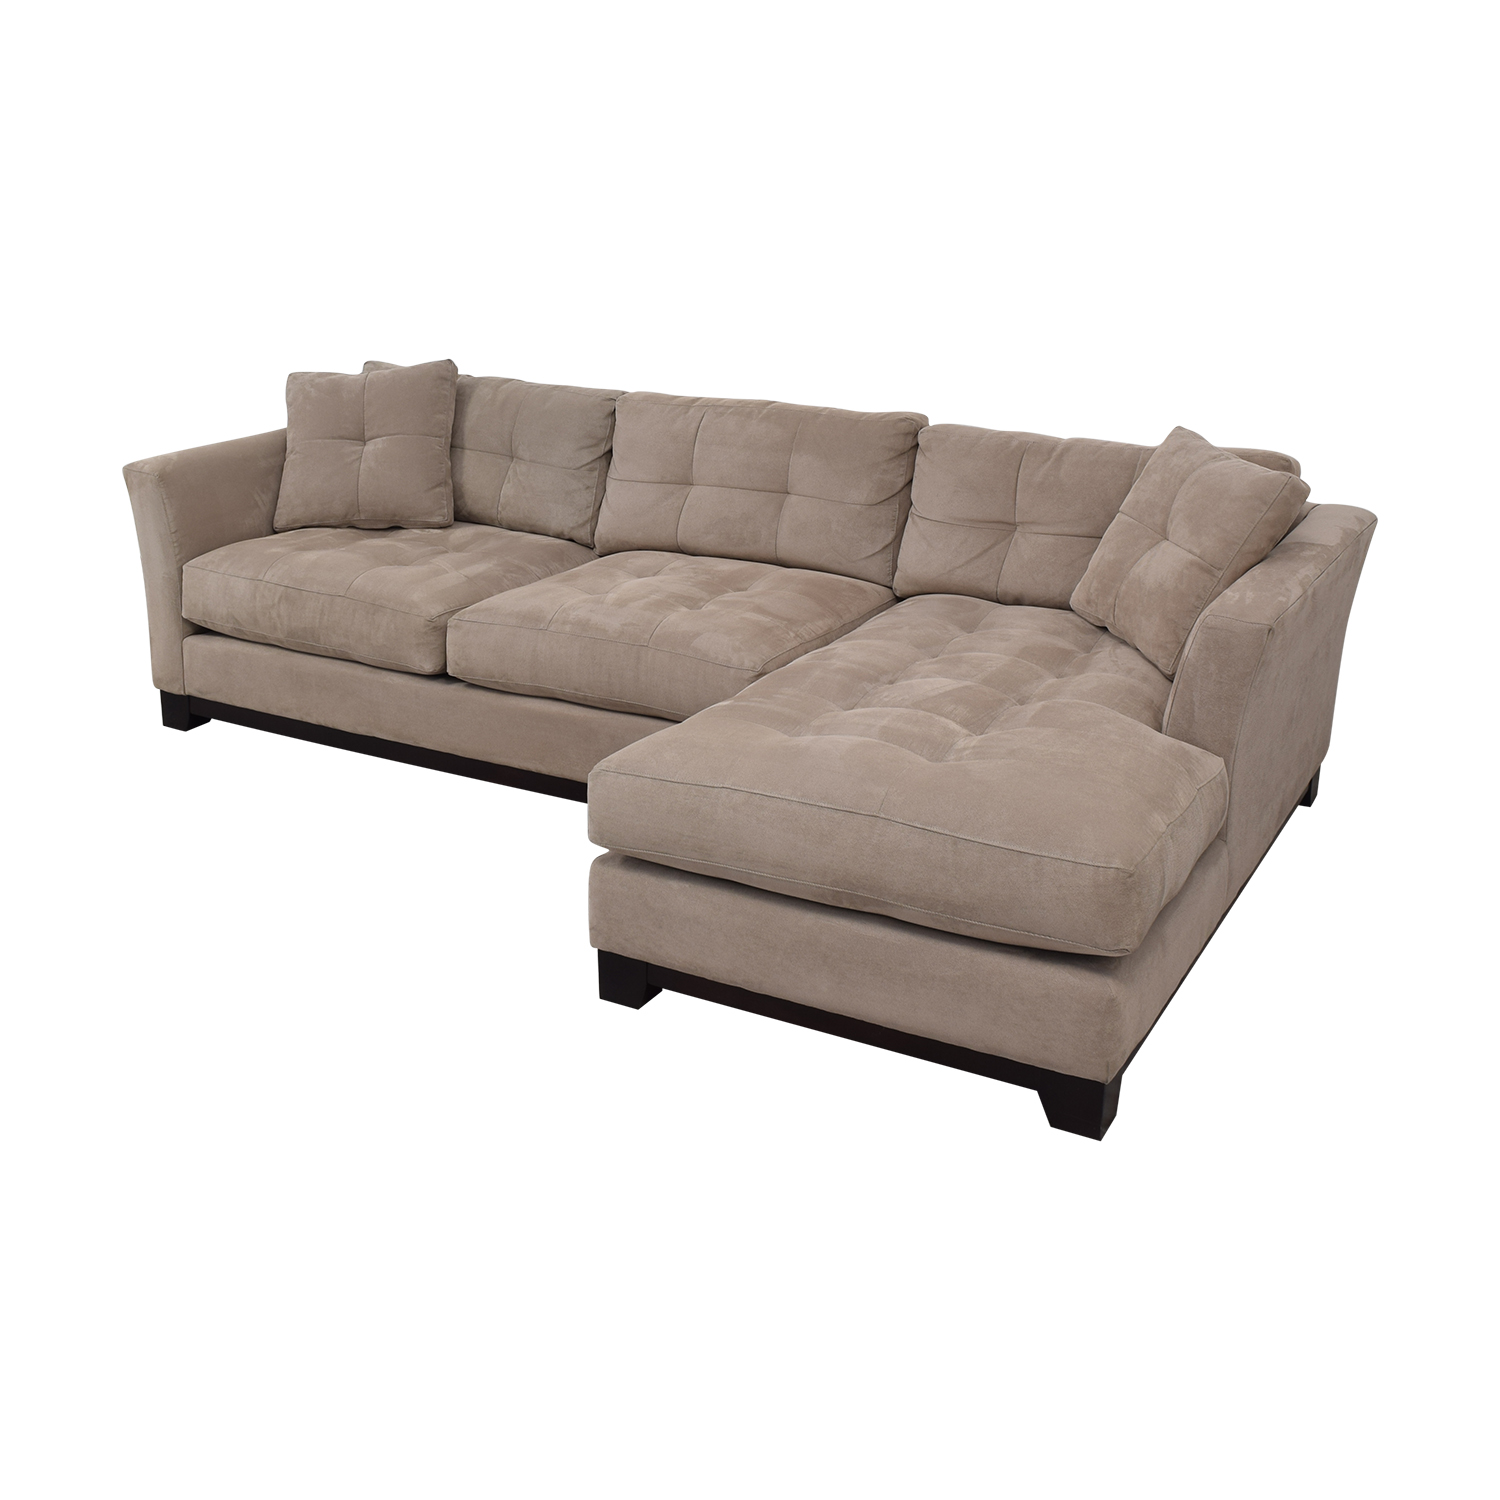 Macy's Macy's Elliot Cindy Crawford Grey Tufted Chaise Sectional for sale